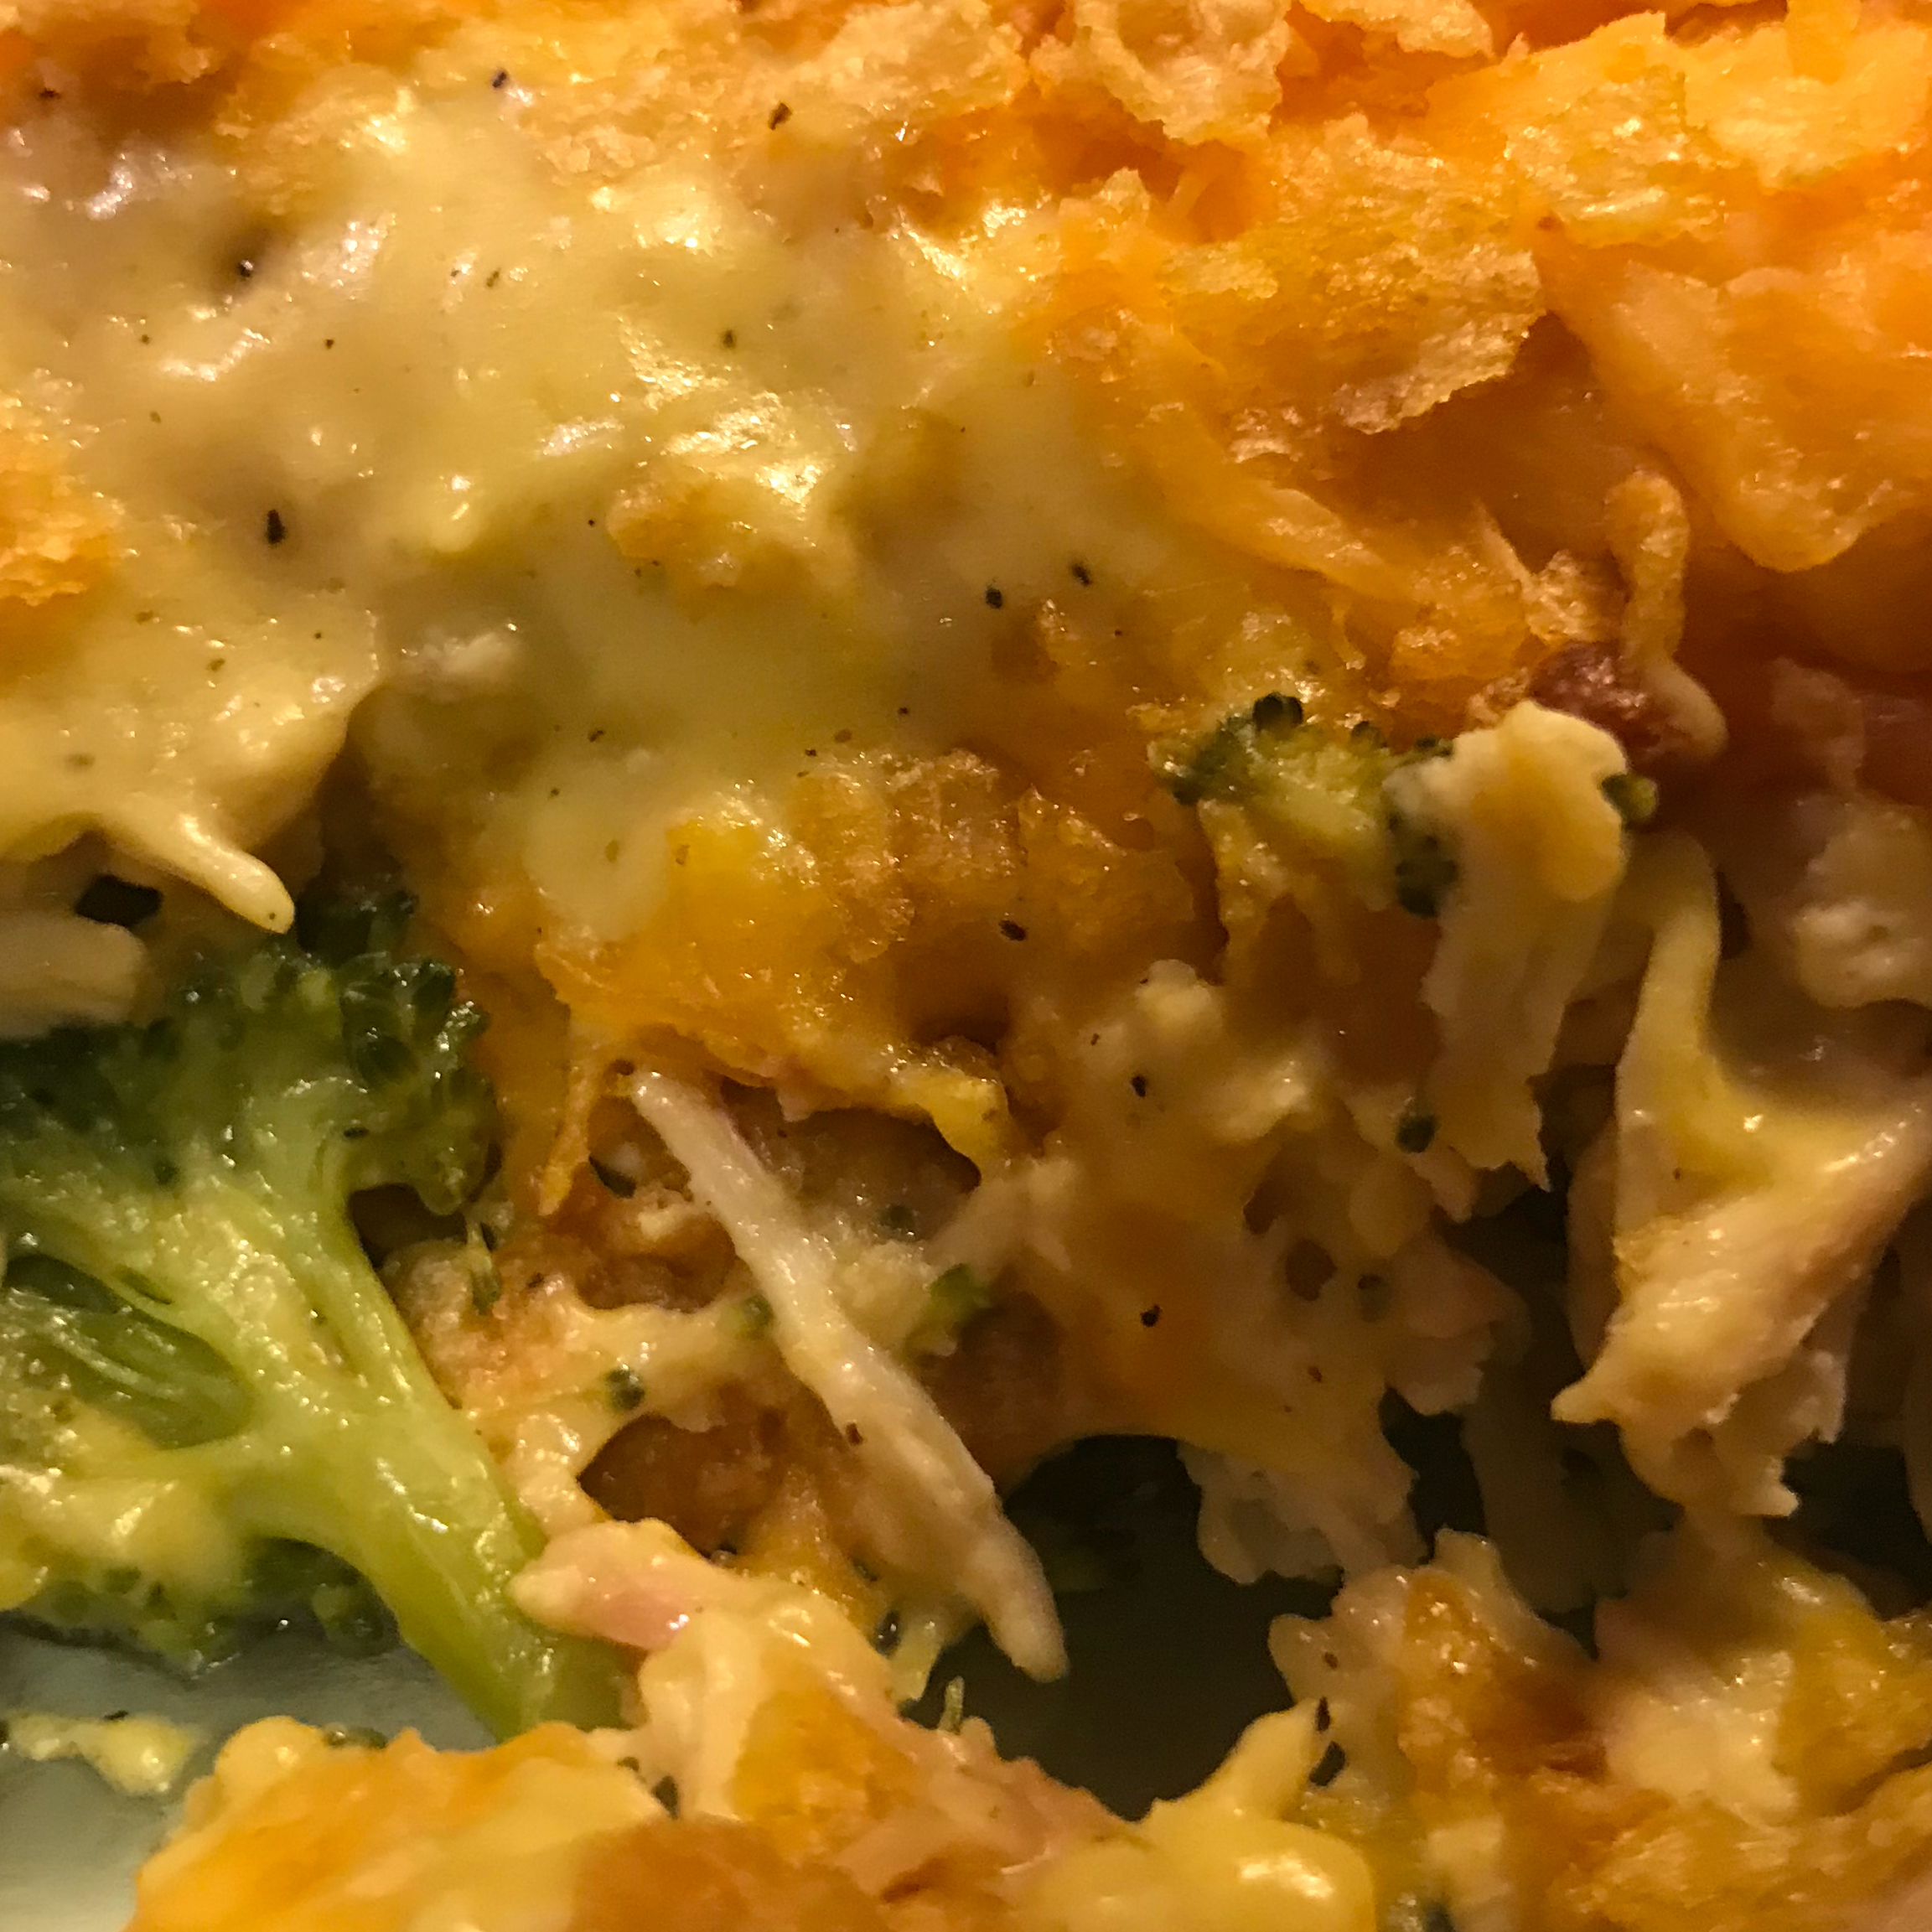 Curried Chicken and Broccoli Casserole